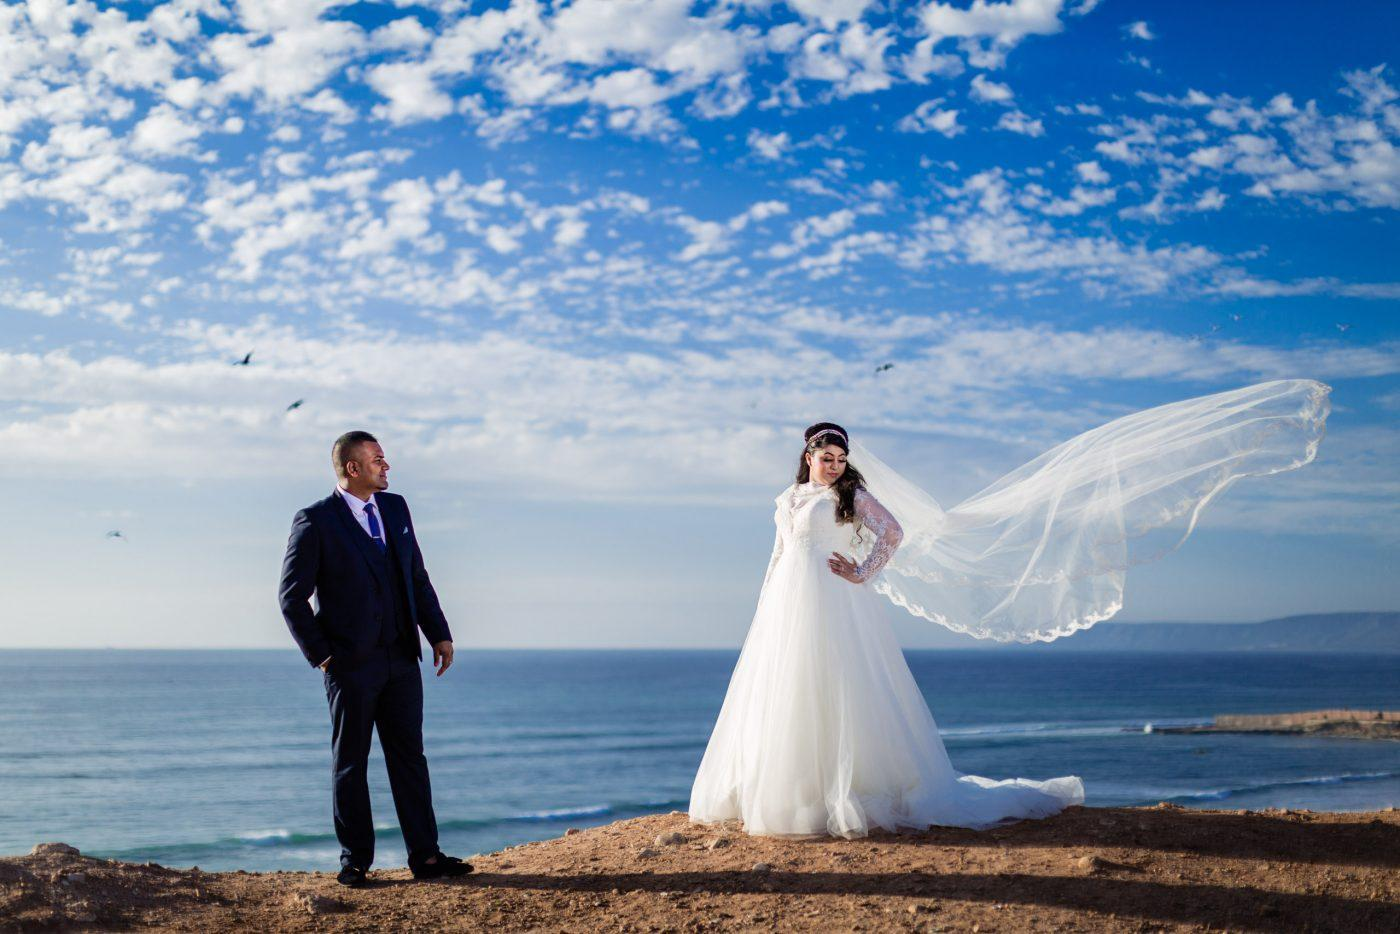 Couple photoshoot at Agadir beach